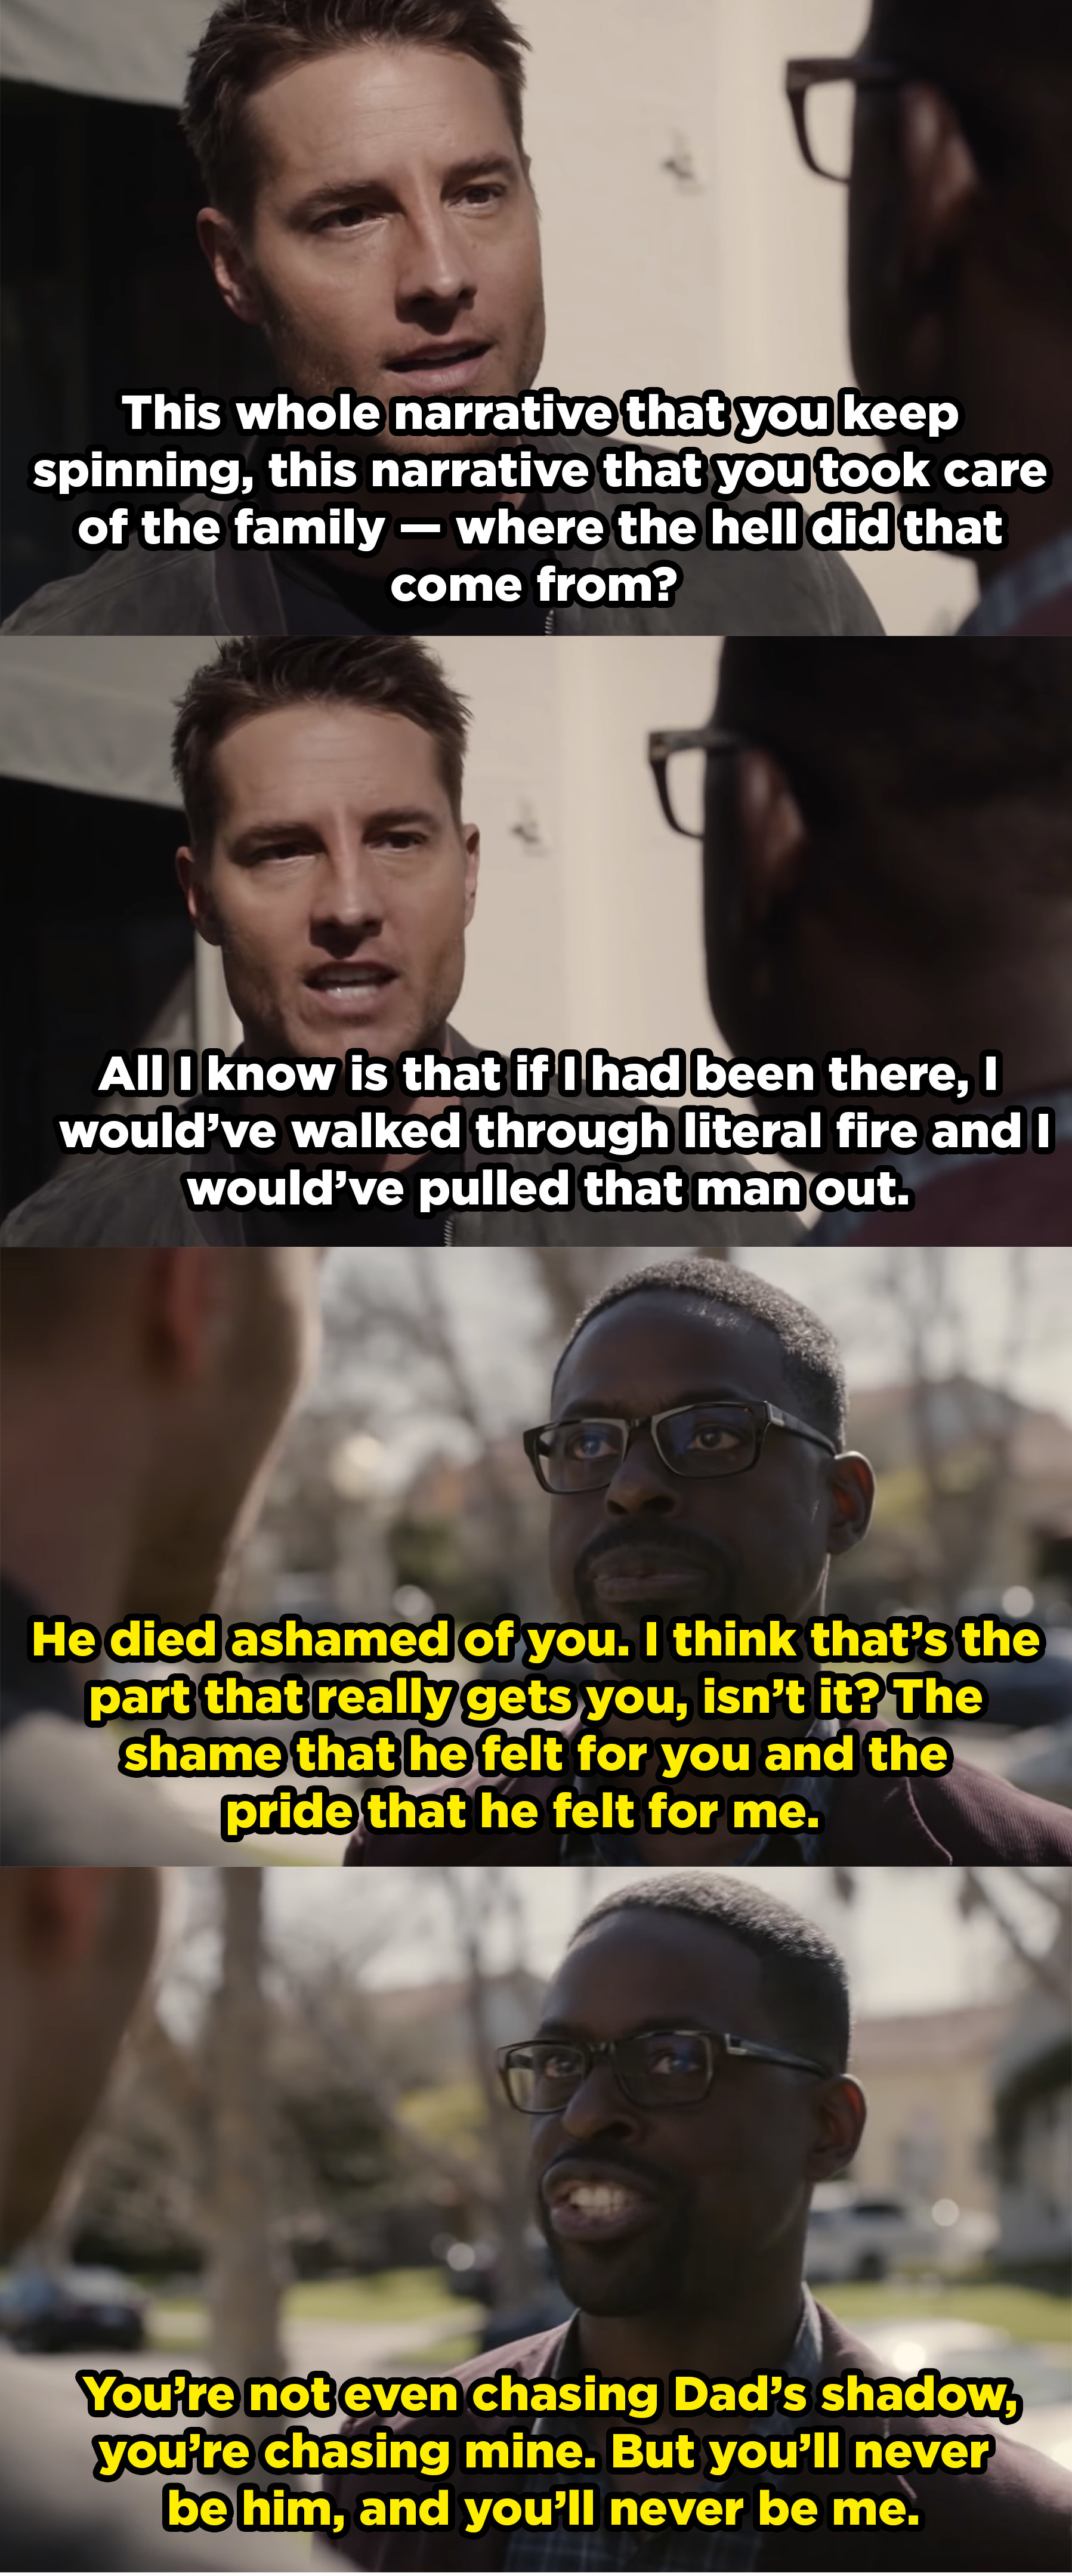 Randall telling his brother that he is chasing Randall's shadow and will never compare to him